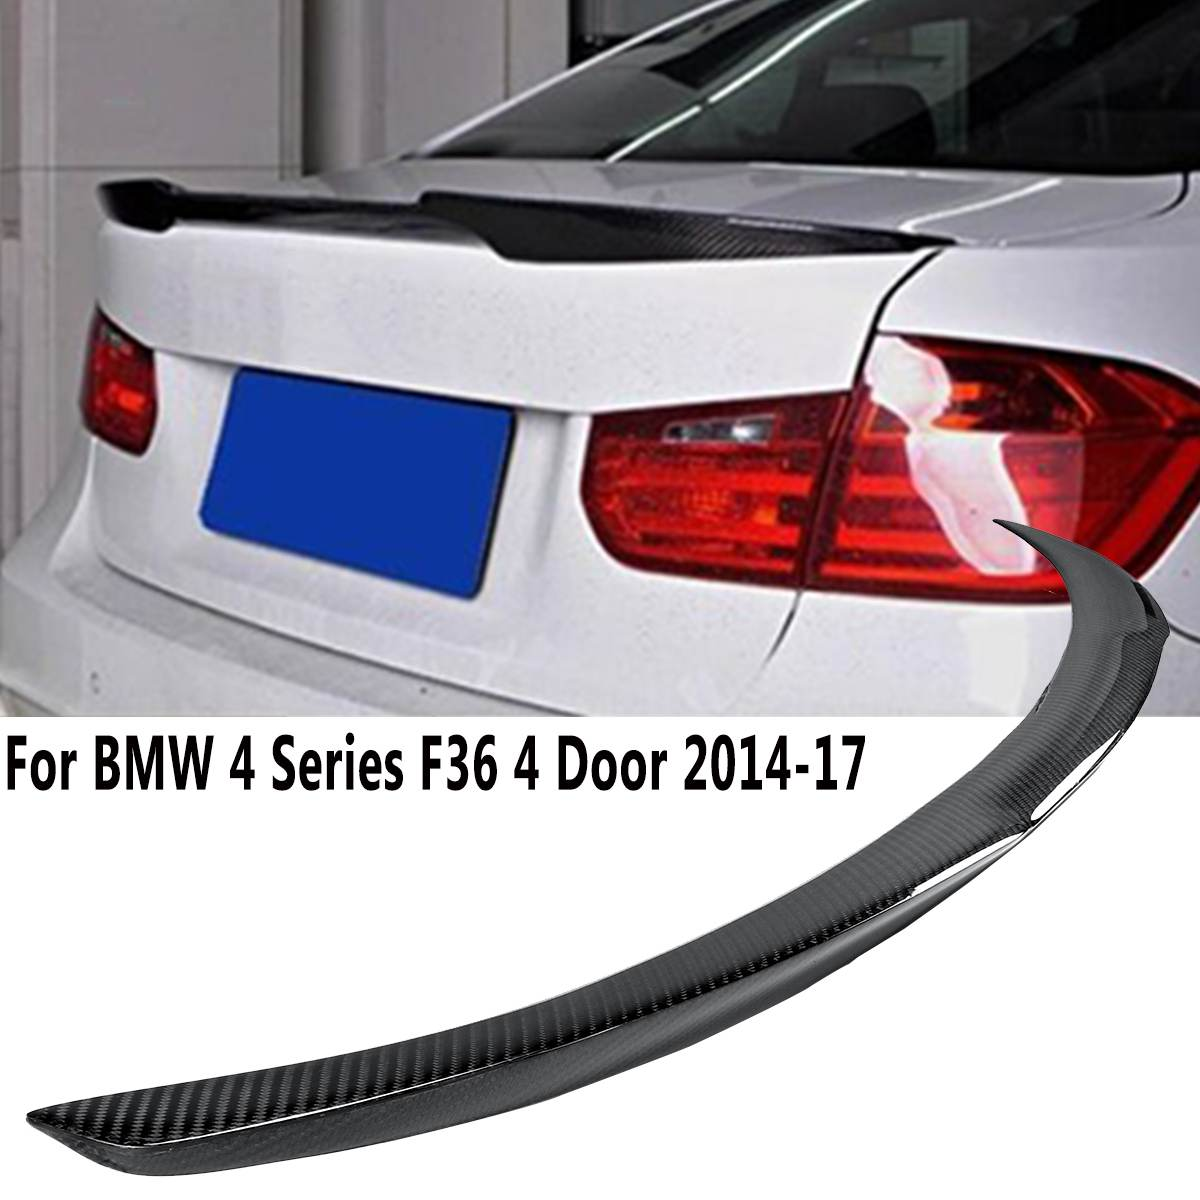 BMW E93 328i 335i M3 Style #300 White Trunk Spoiler Wing For Convertible 07-13